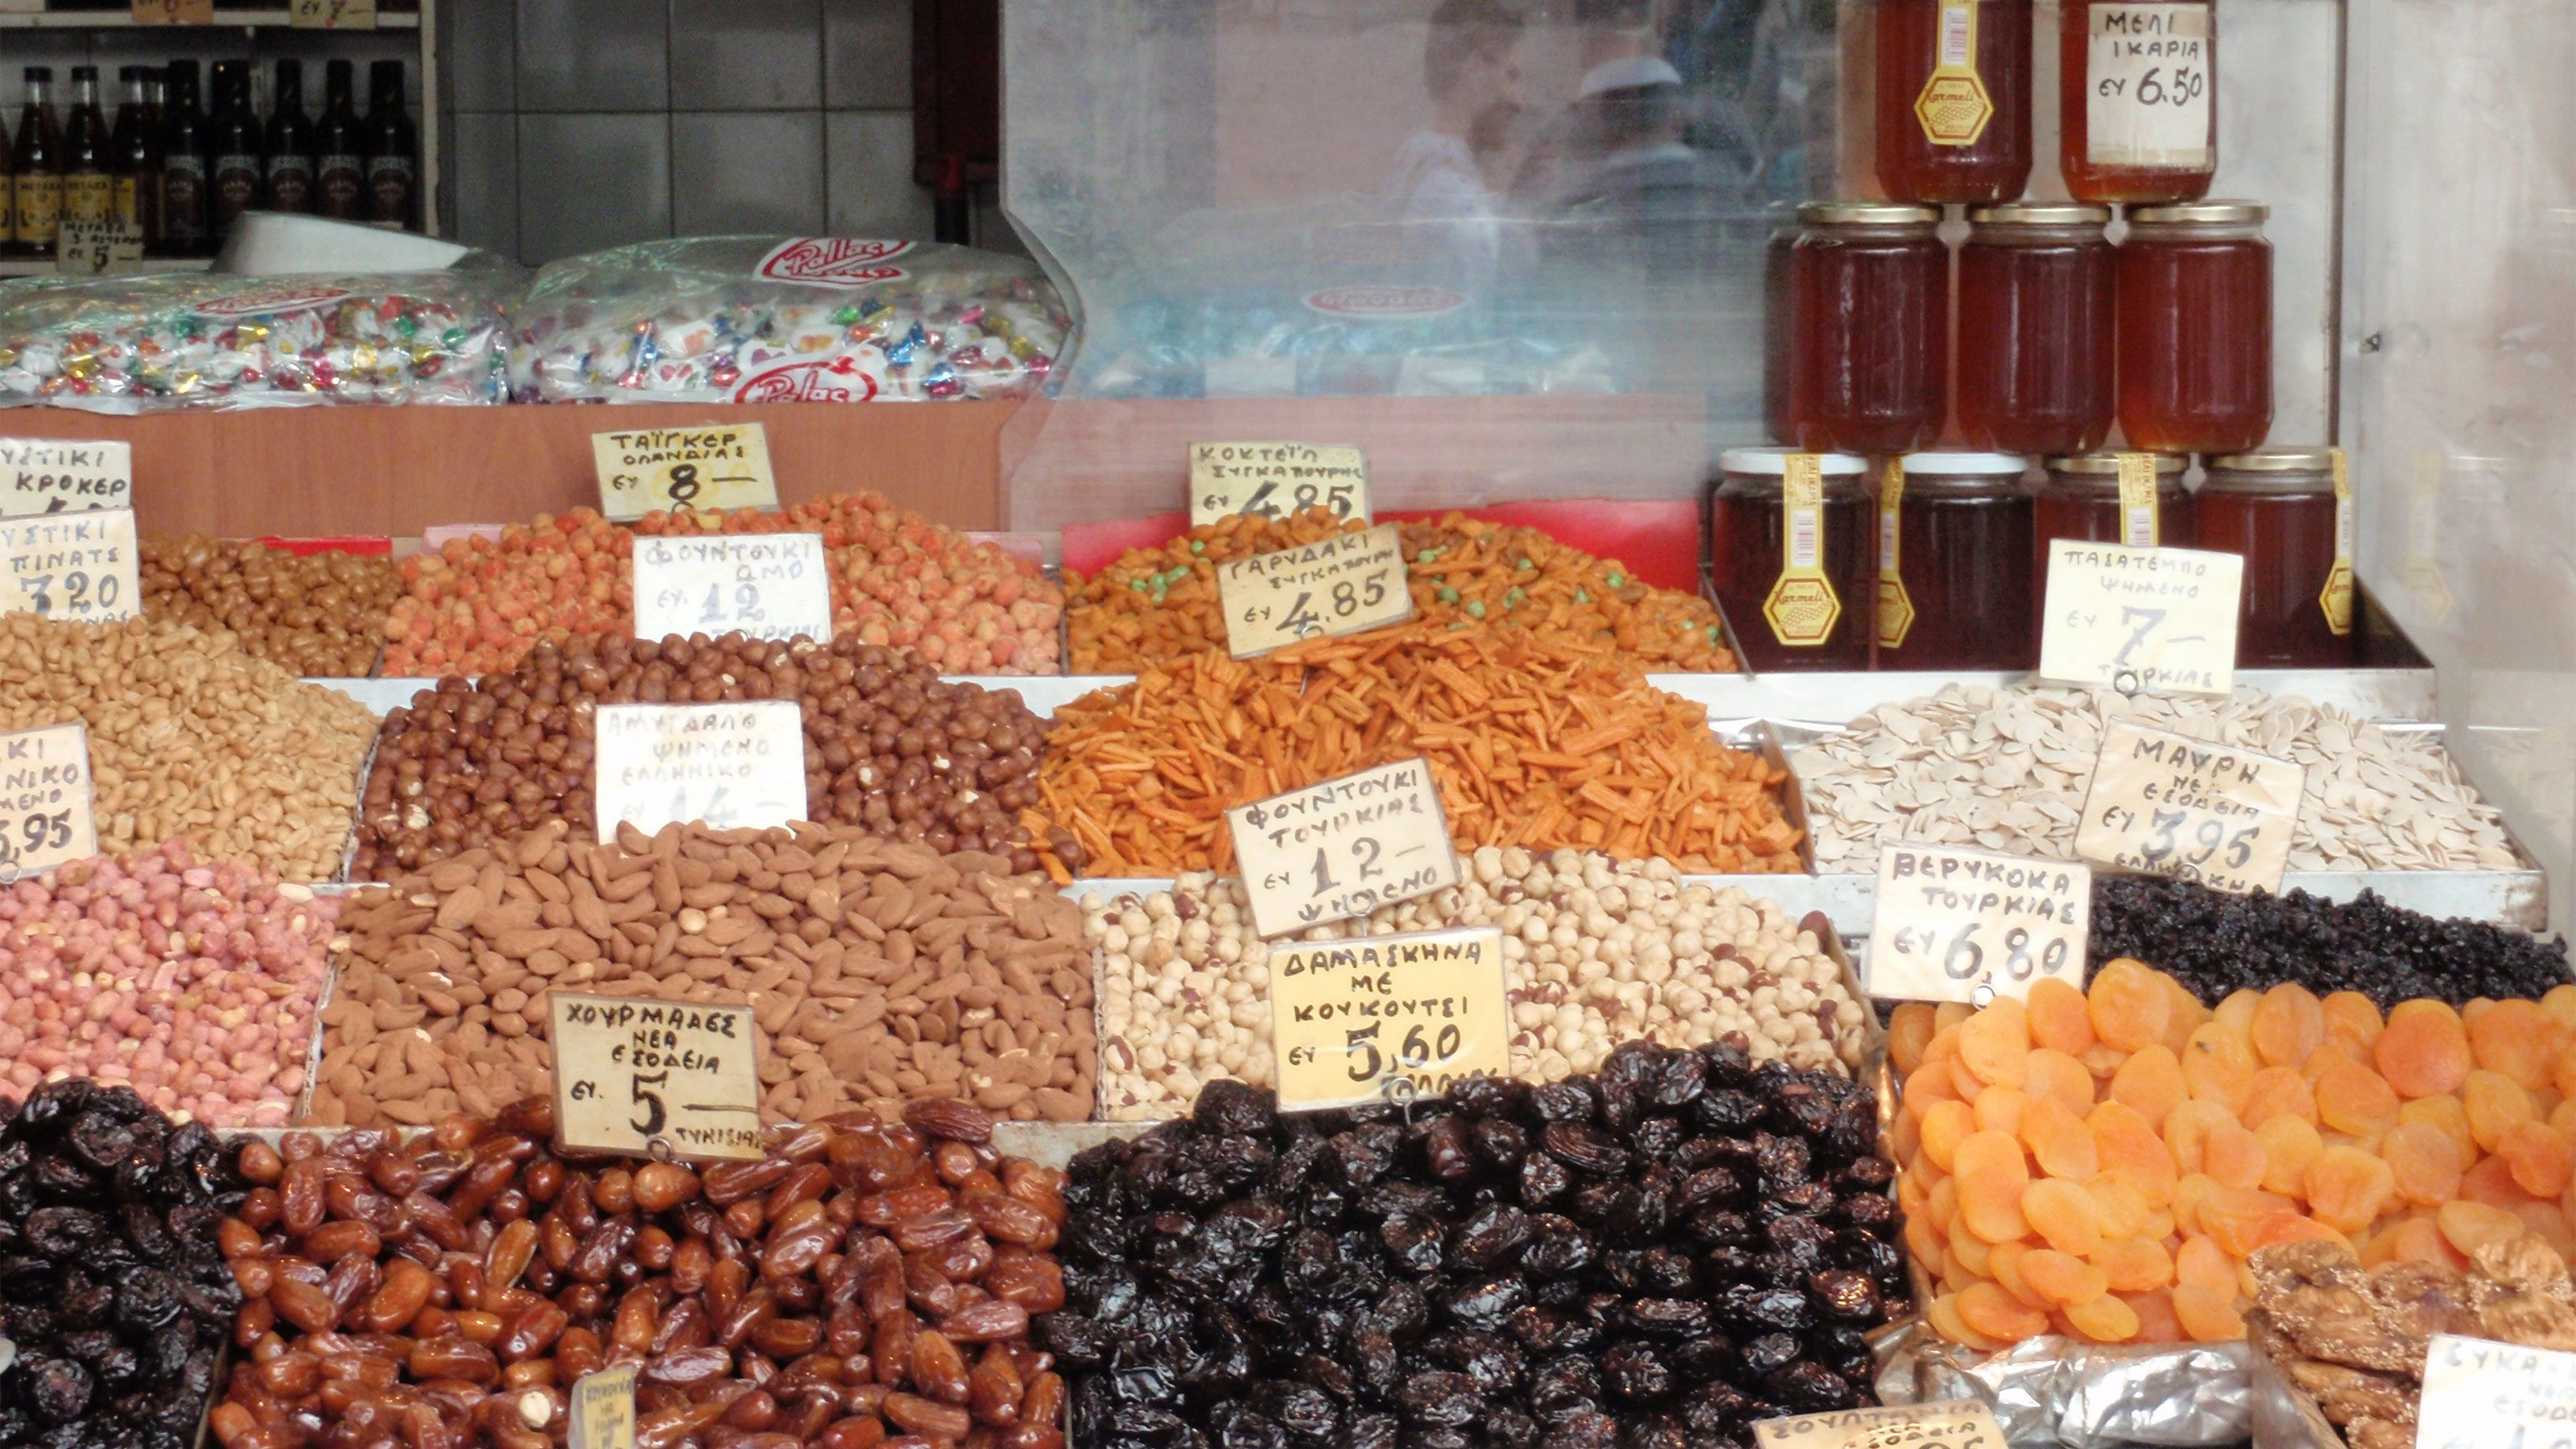 Bins of nuts at an open-air market in Athens